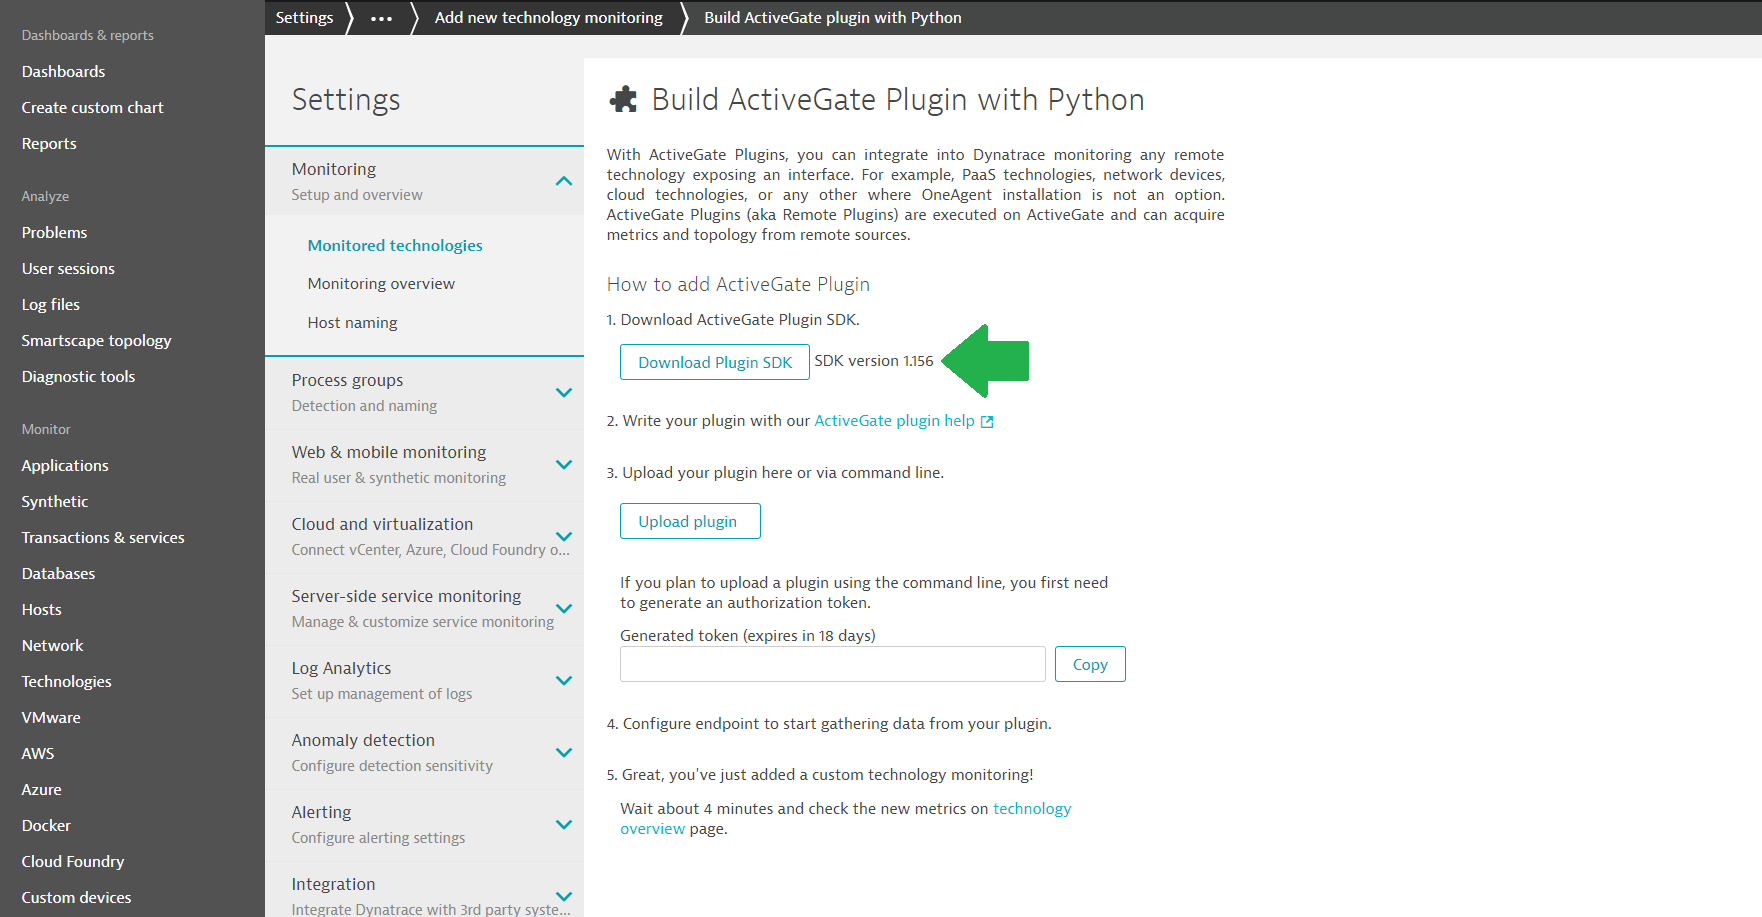 ActiveGate Plugins Download SDK